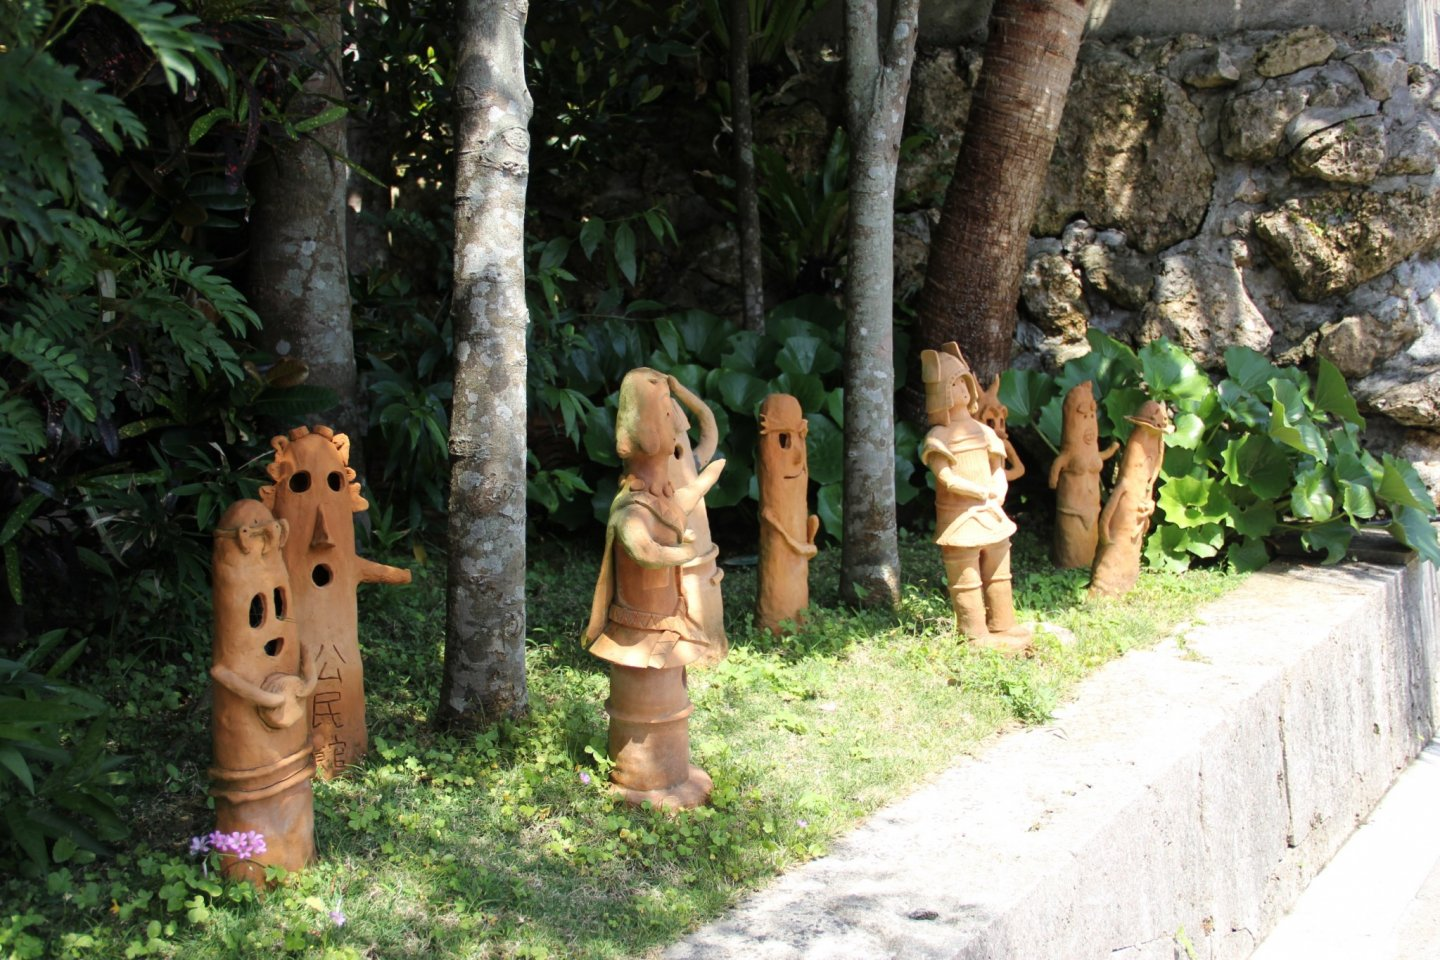 Okinawan art made of Ryukyuan red tile on display along the pathway to the Nakamura House in Kitanakagusuku